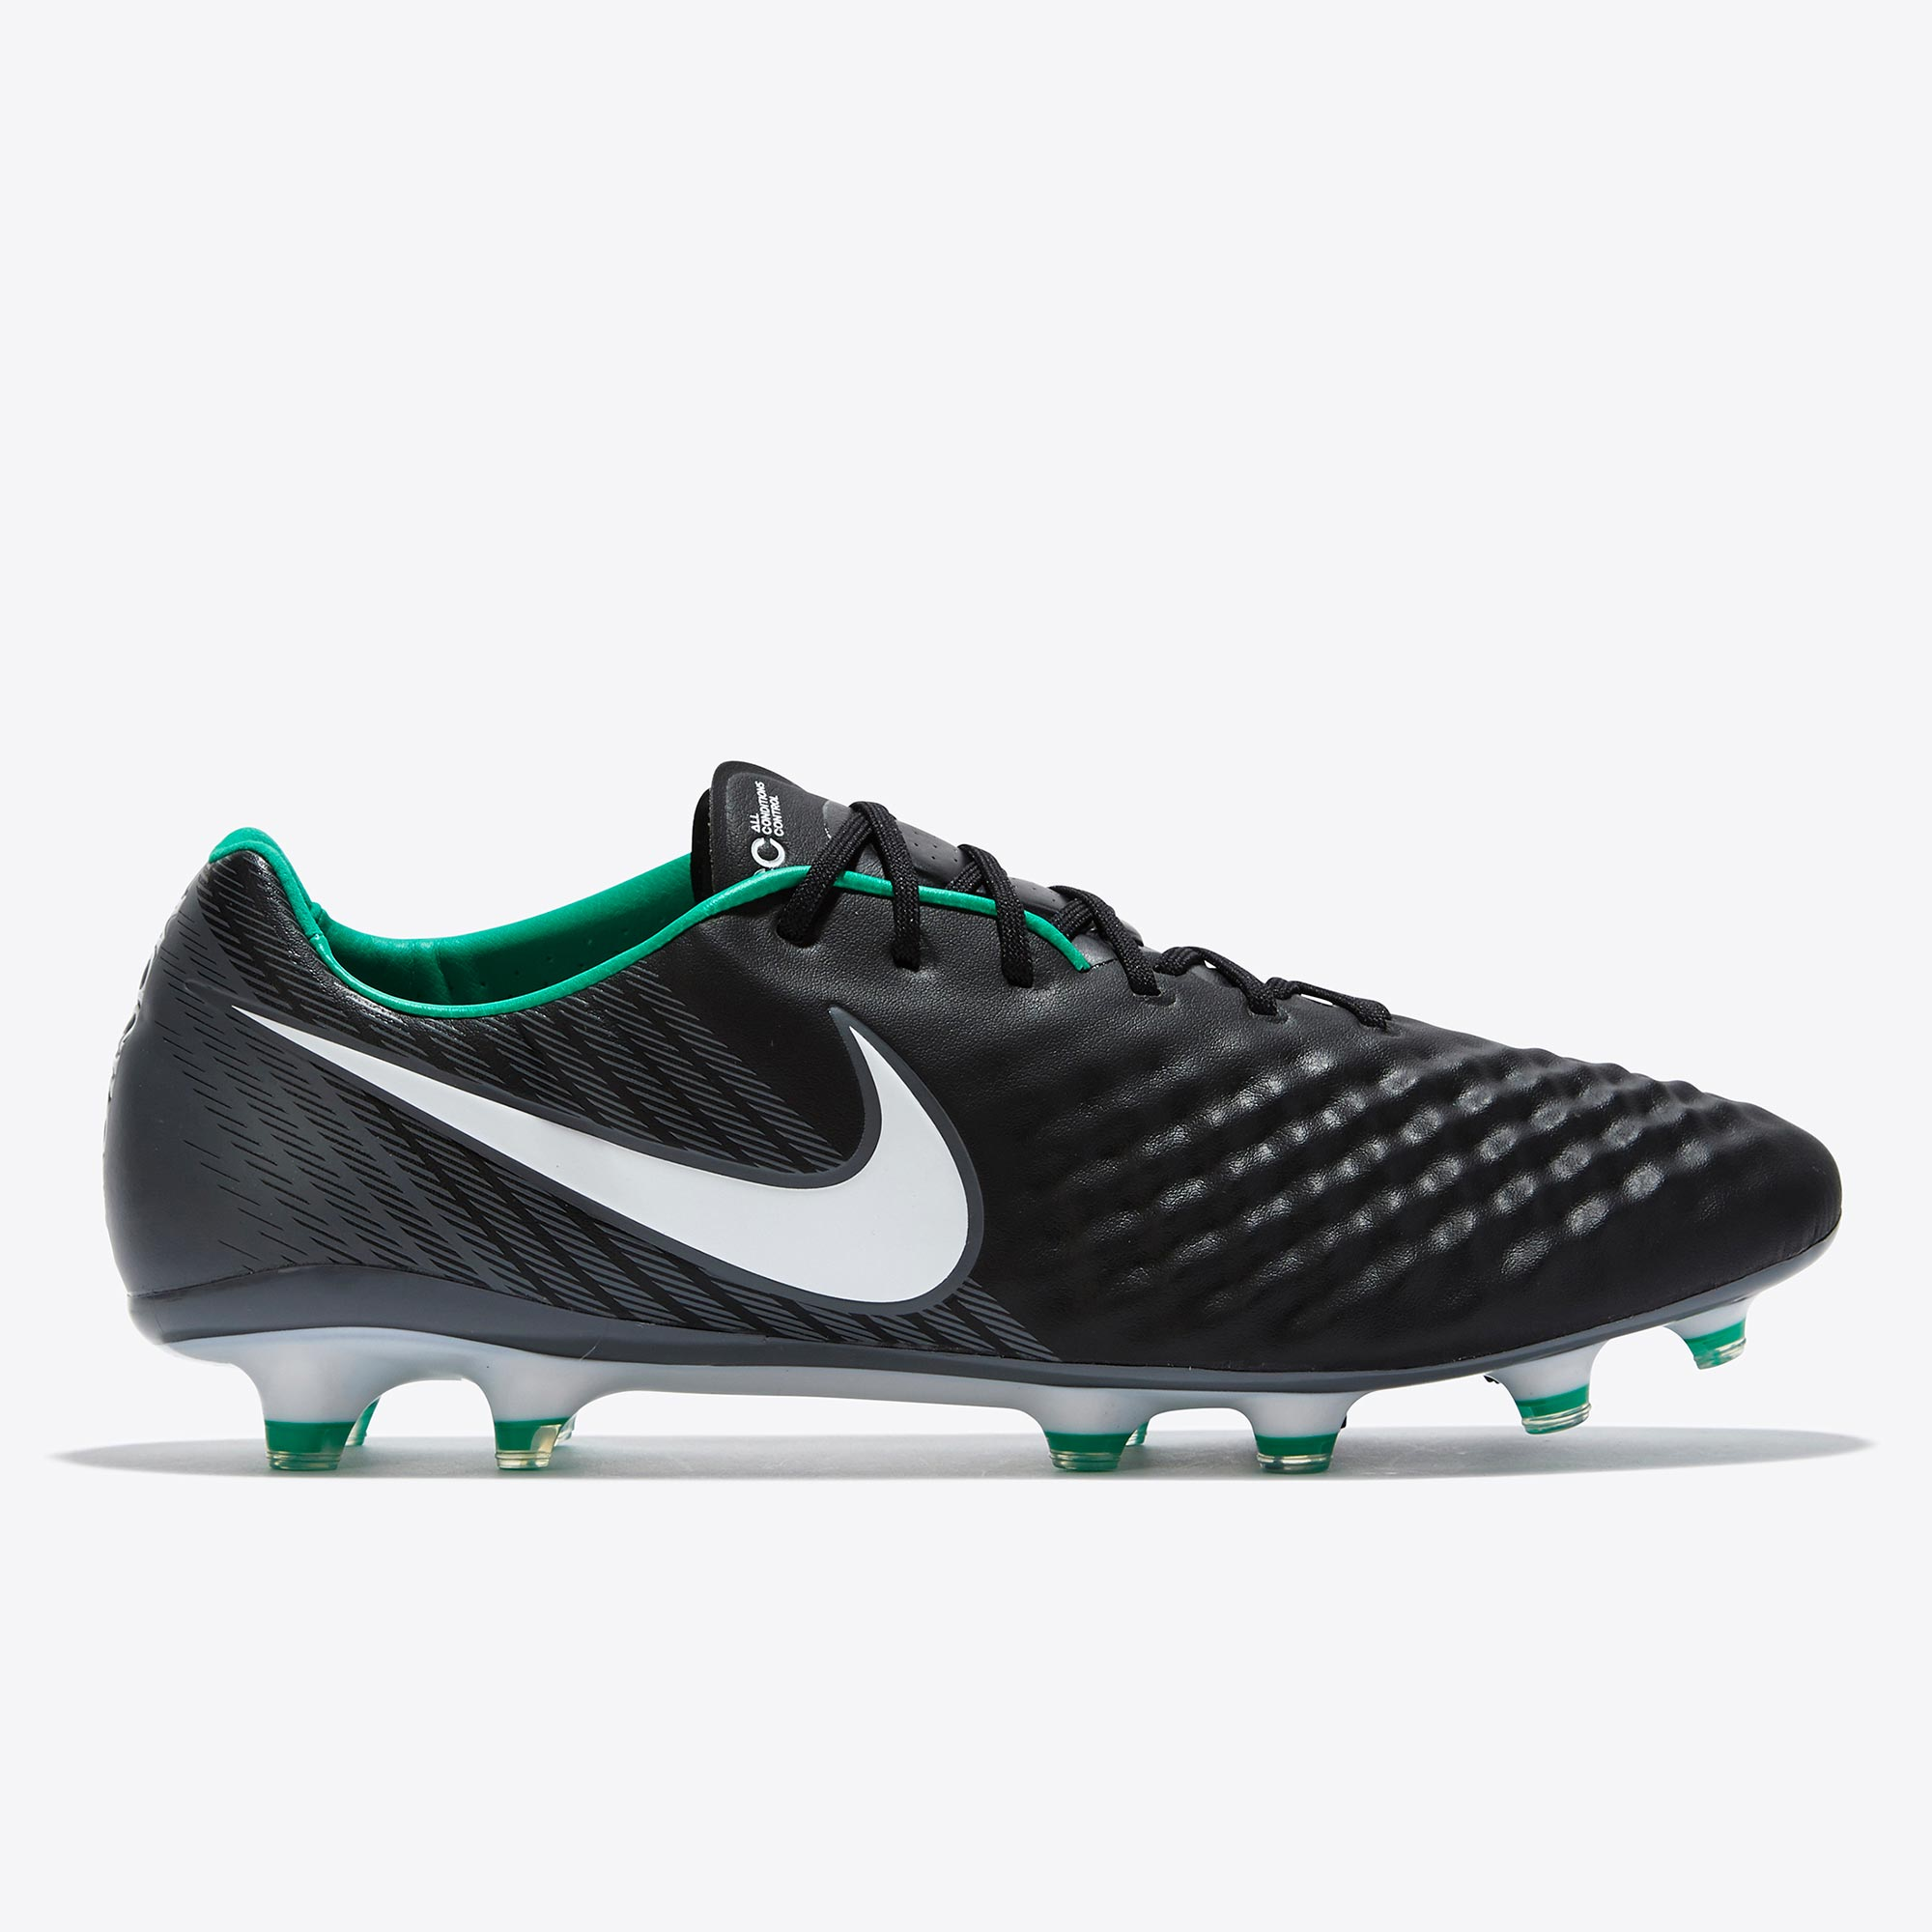 Nike Magista Opus II Firm Ground Football Boots - Black/White/Dark Gre